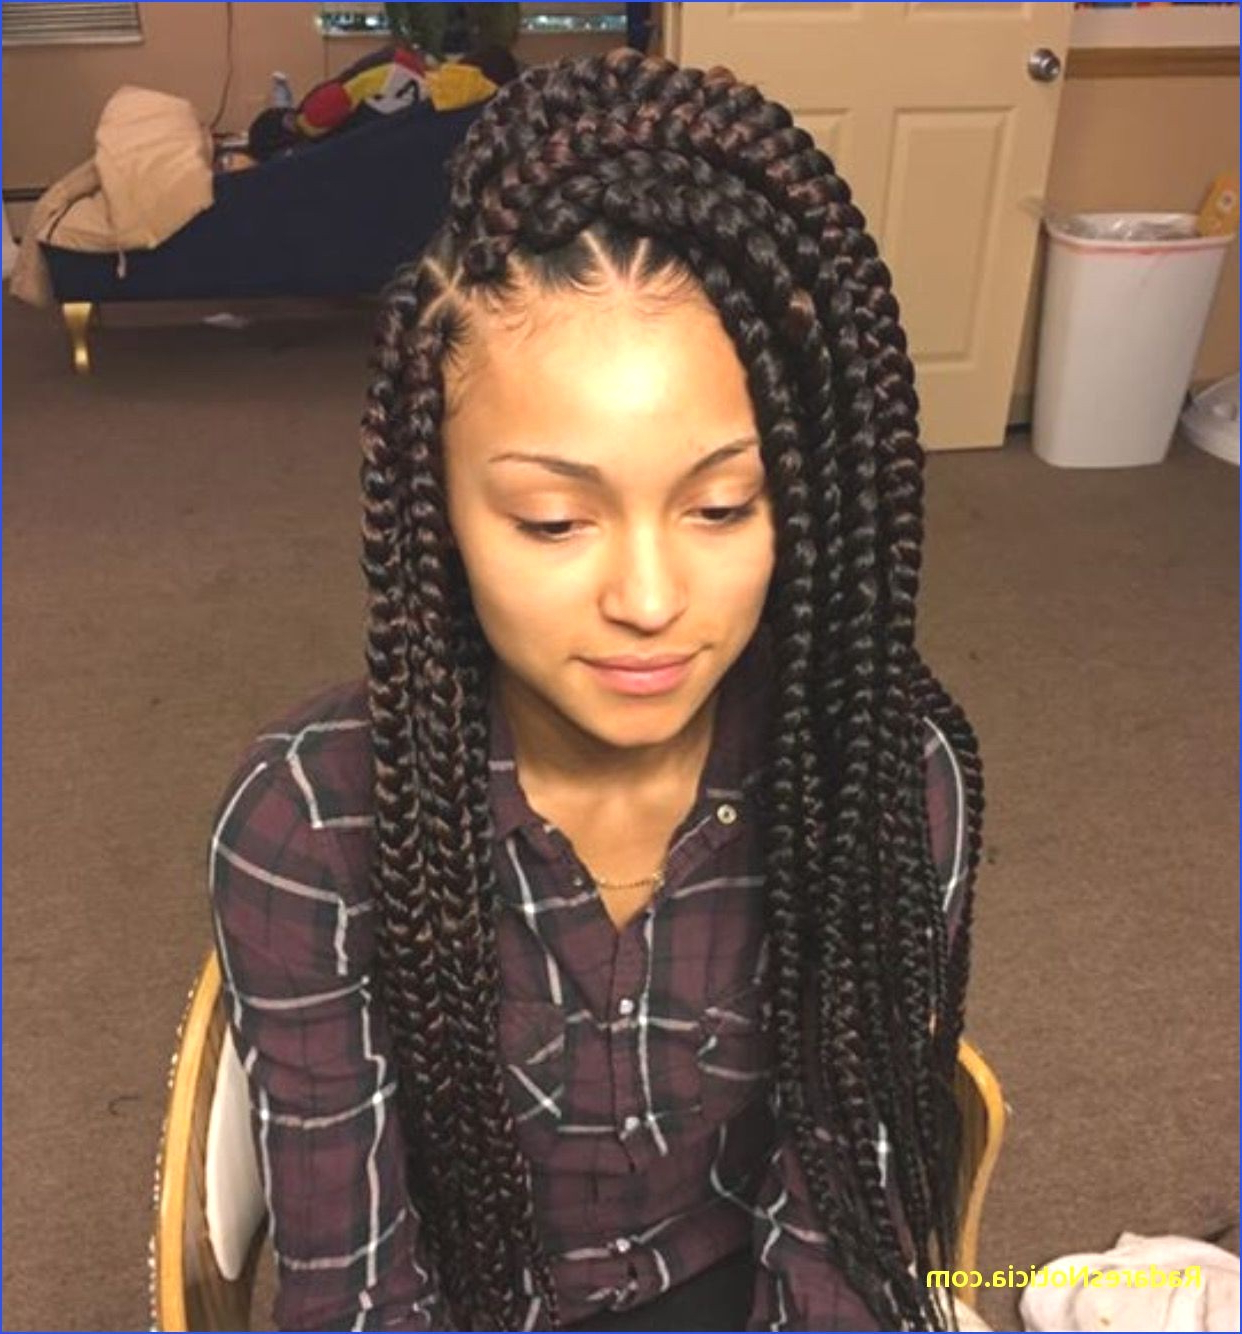 Hairstyles : Big Box Braids Hairstyles Magnificent For Kids Pertaining To Fashionable Big Bun Braided Hairstyles (Gallery 19 of 20)